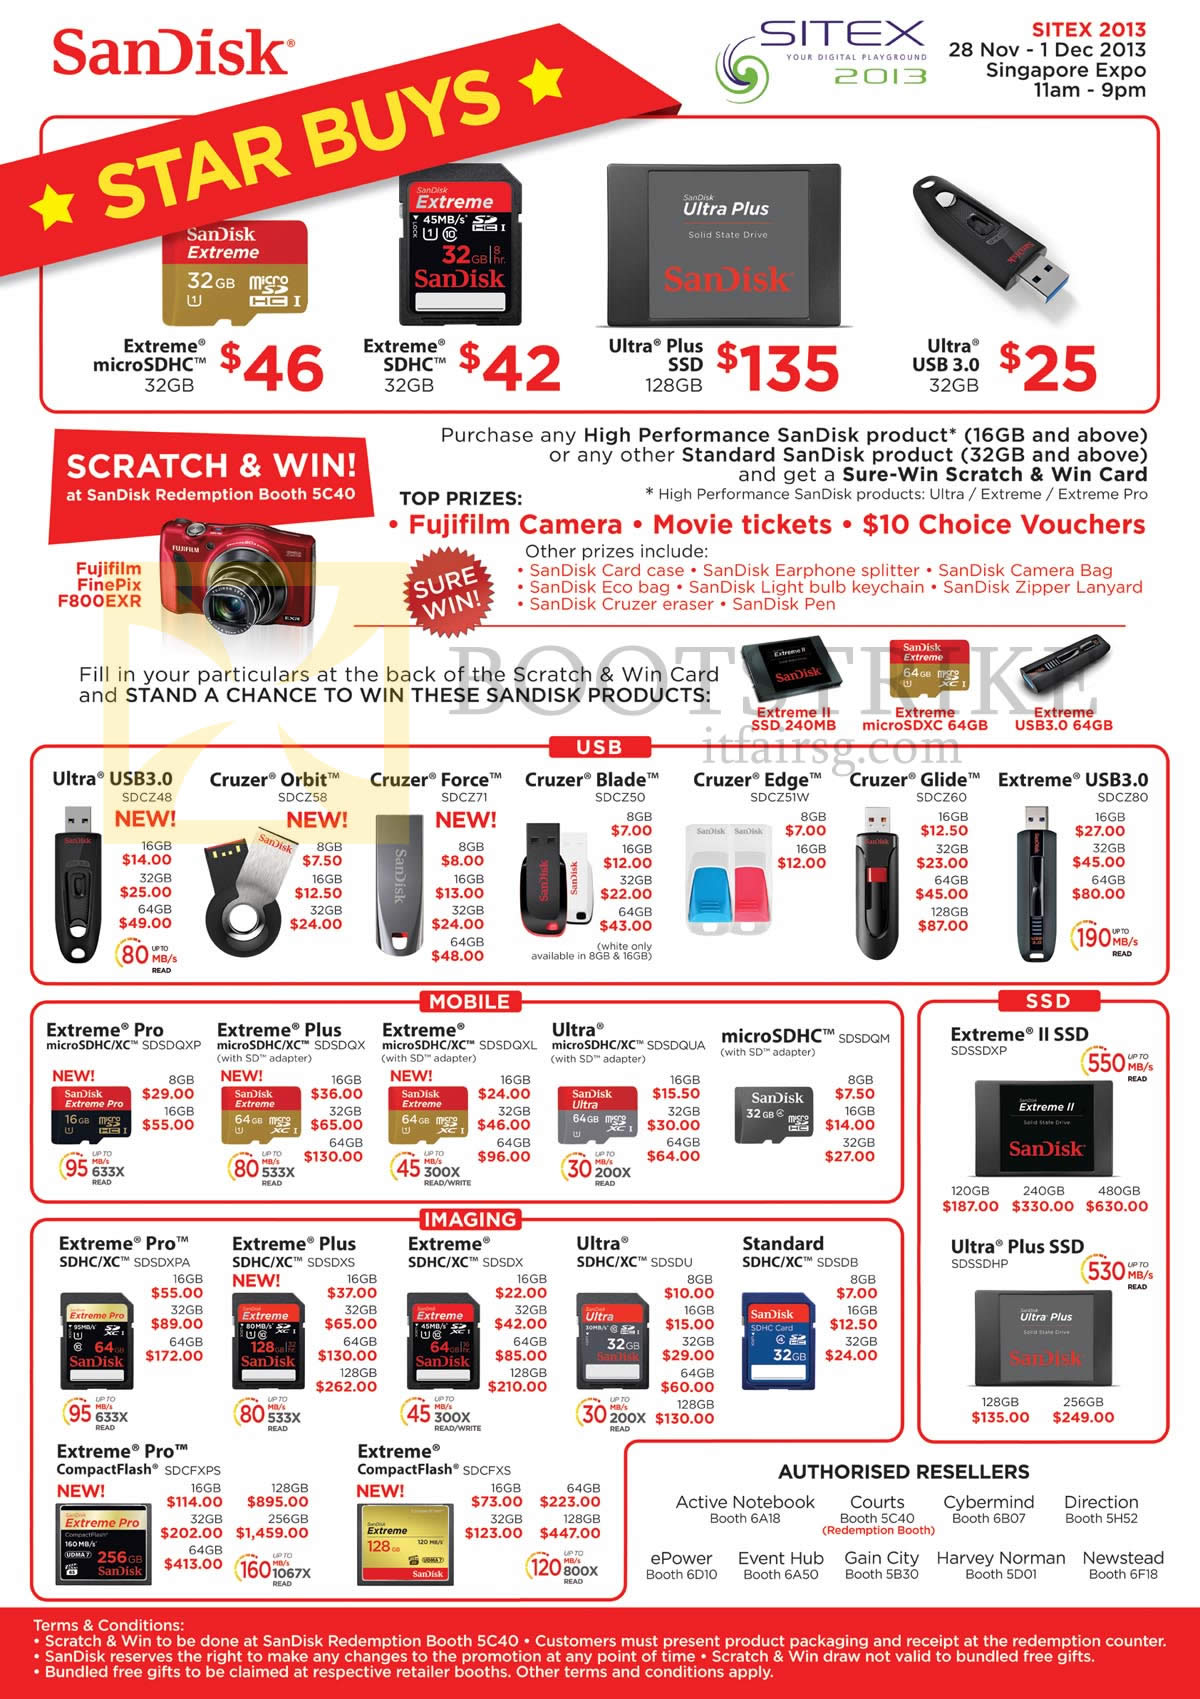 SITEX 2013 price list image brochure of Sandisk USB Flash Drives, Memory Cards MicroSDHC, Extreme SDHC, Ultra Plus SSD, Cruzer Orbit Force Blade Edge Glide, Extreme Pro Plus II, CompactFlash CF, MicroSDXC